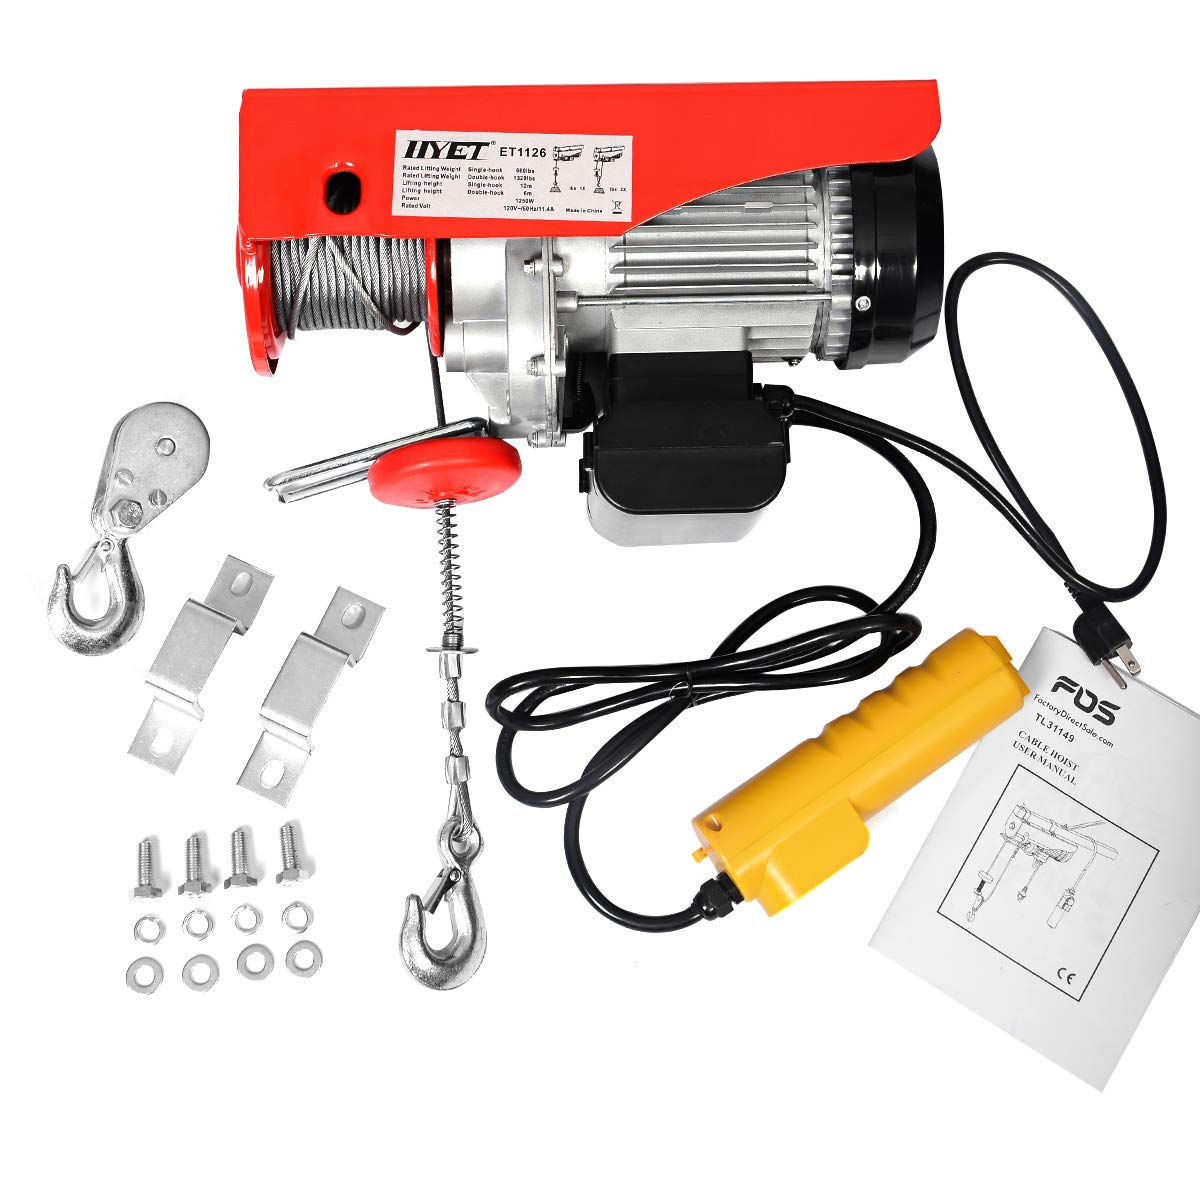 Other Cranes & Hoists 1320Lbs Mini Electric Wire Hoist Remote ...